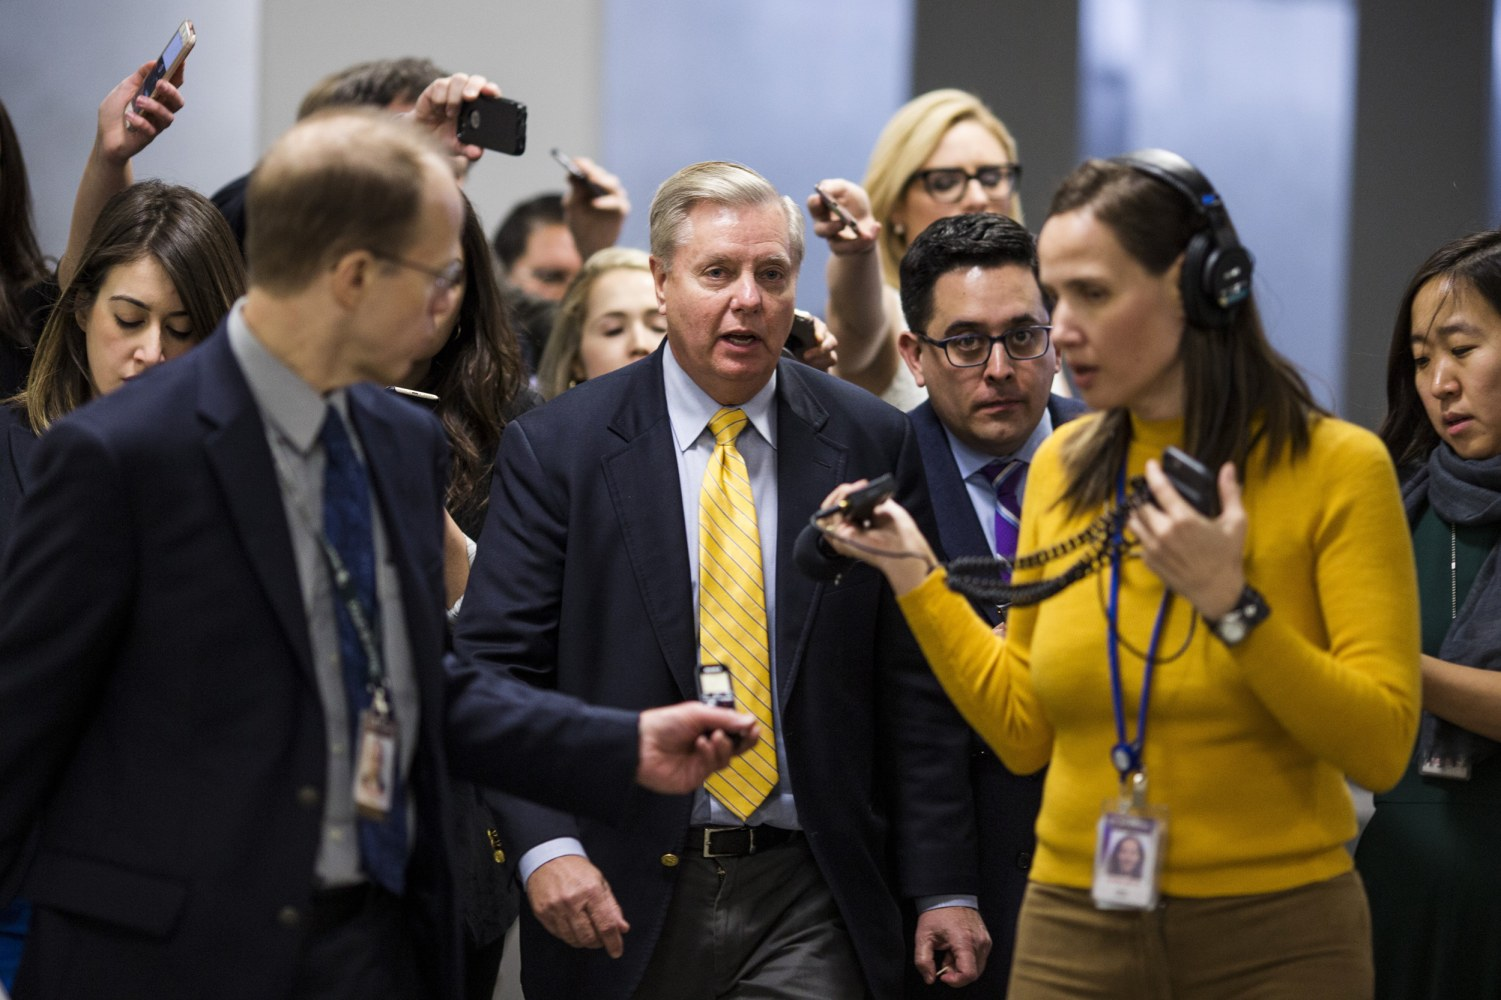 Republican Sen. Lindsey Graham: Let's end this